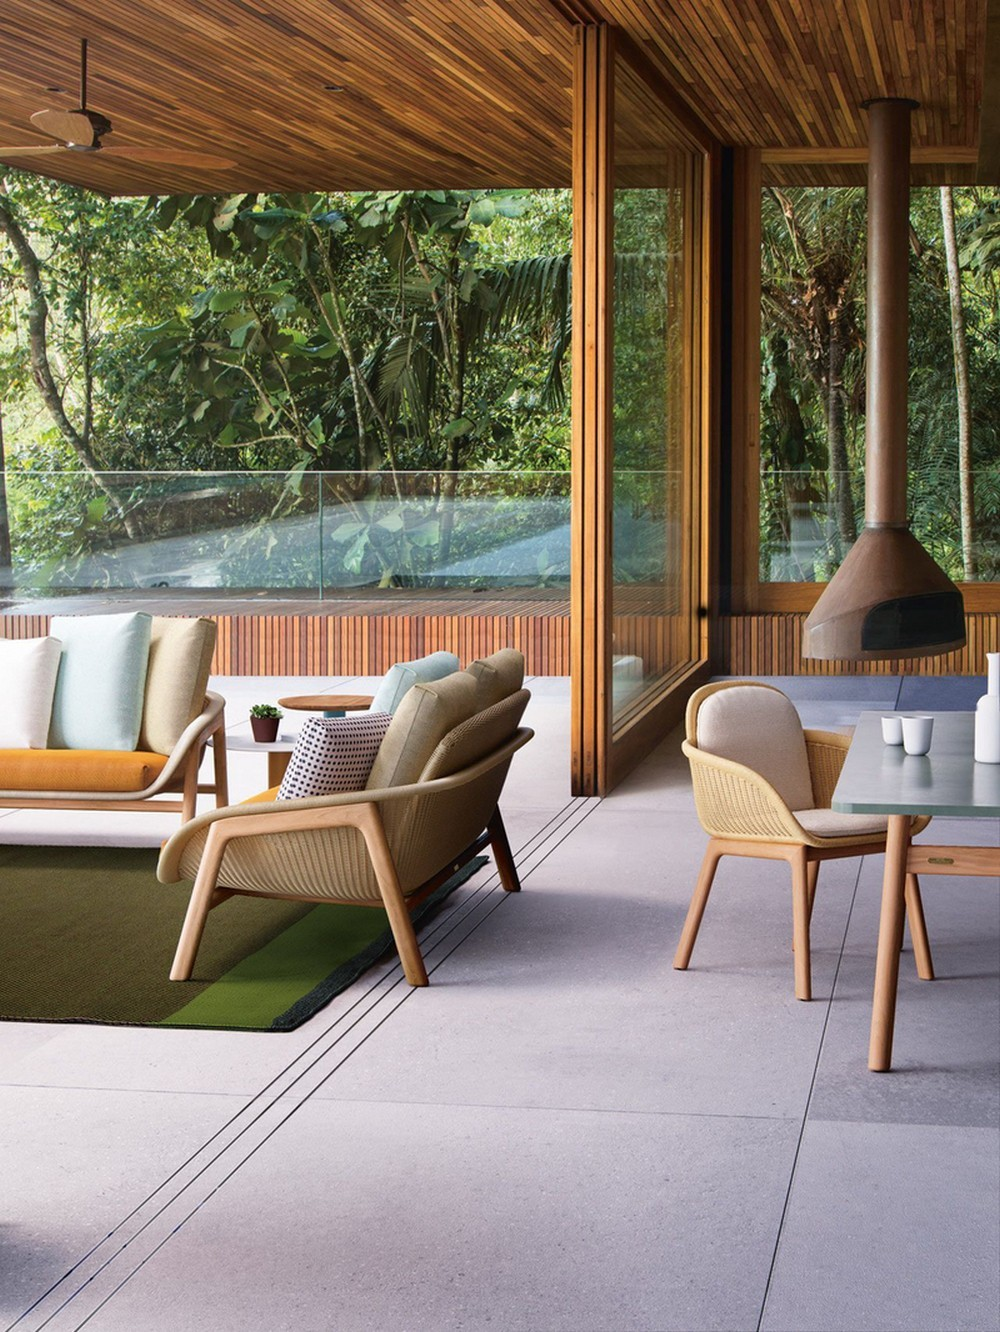 CovetED Magazine Reveals The Best Outdoor Projects In The World!